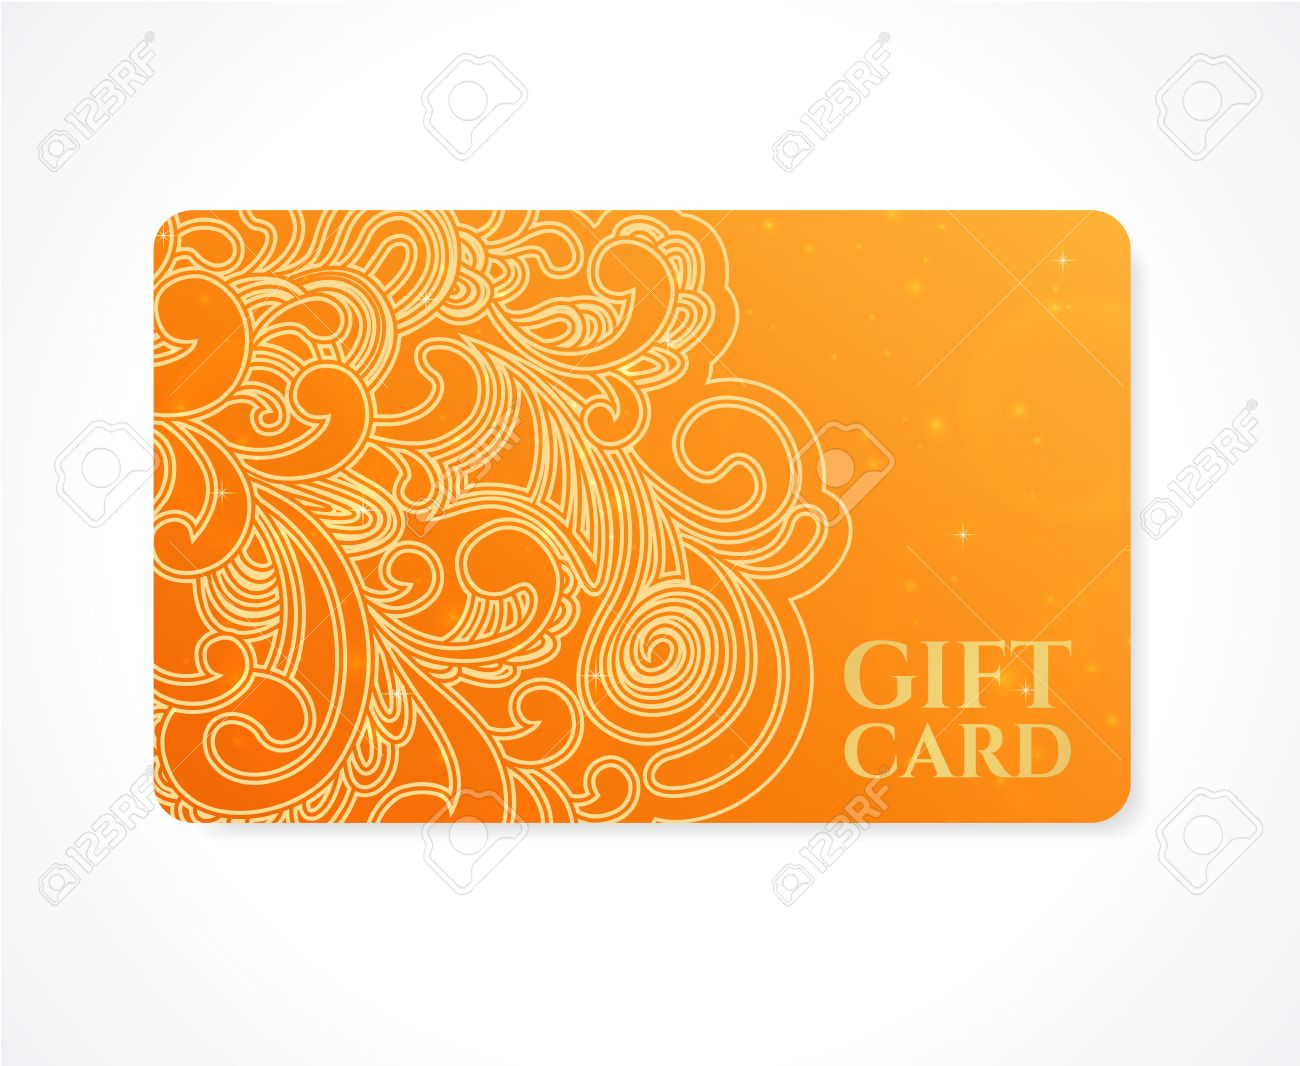 Bright orange gift card business card discount card template with banco de imagens bright orange gift card business card discount card template with floral scroll swirl shape pattern design for discount card reheart Image collections